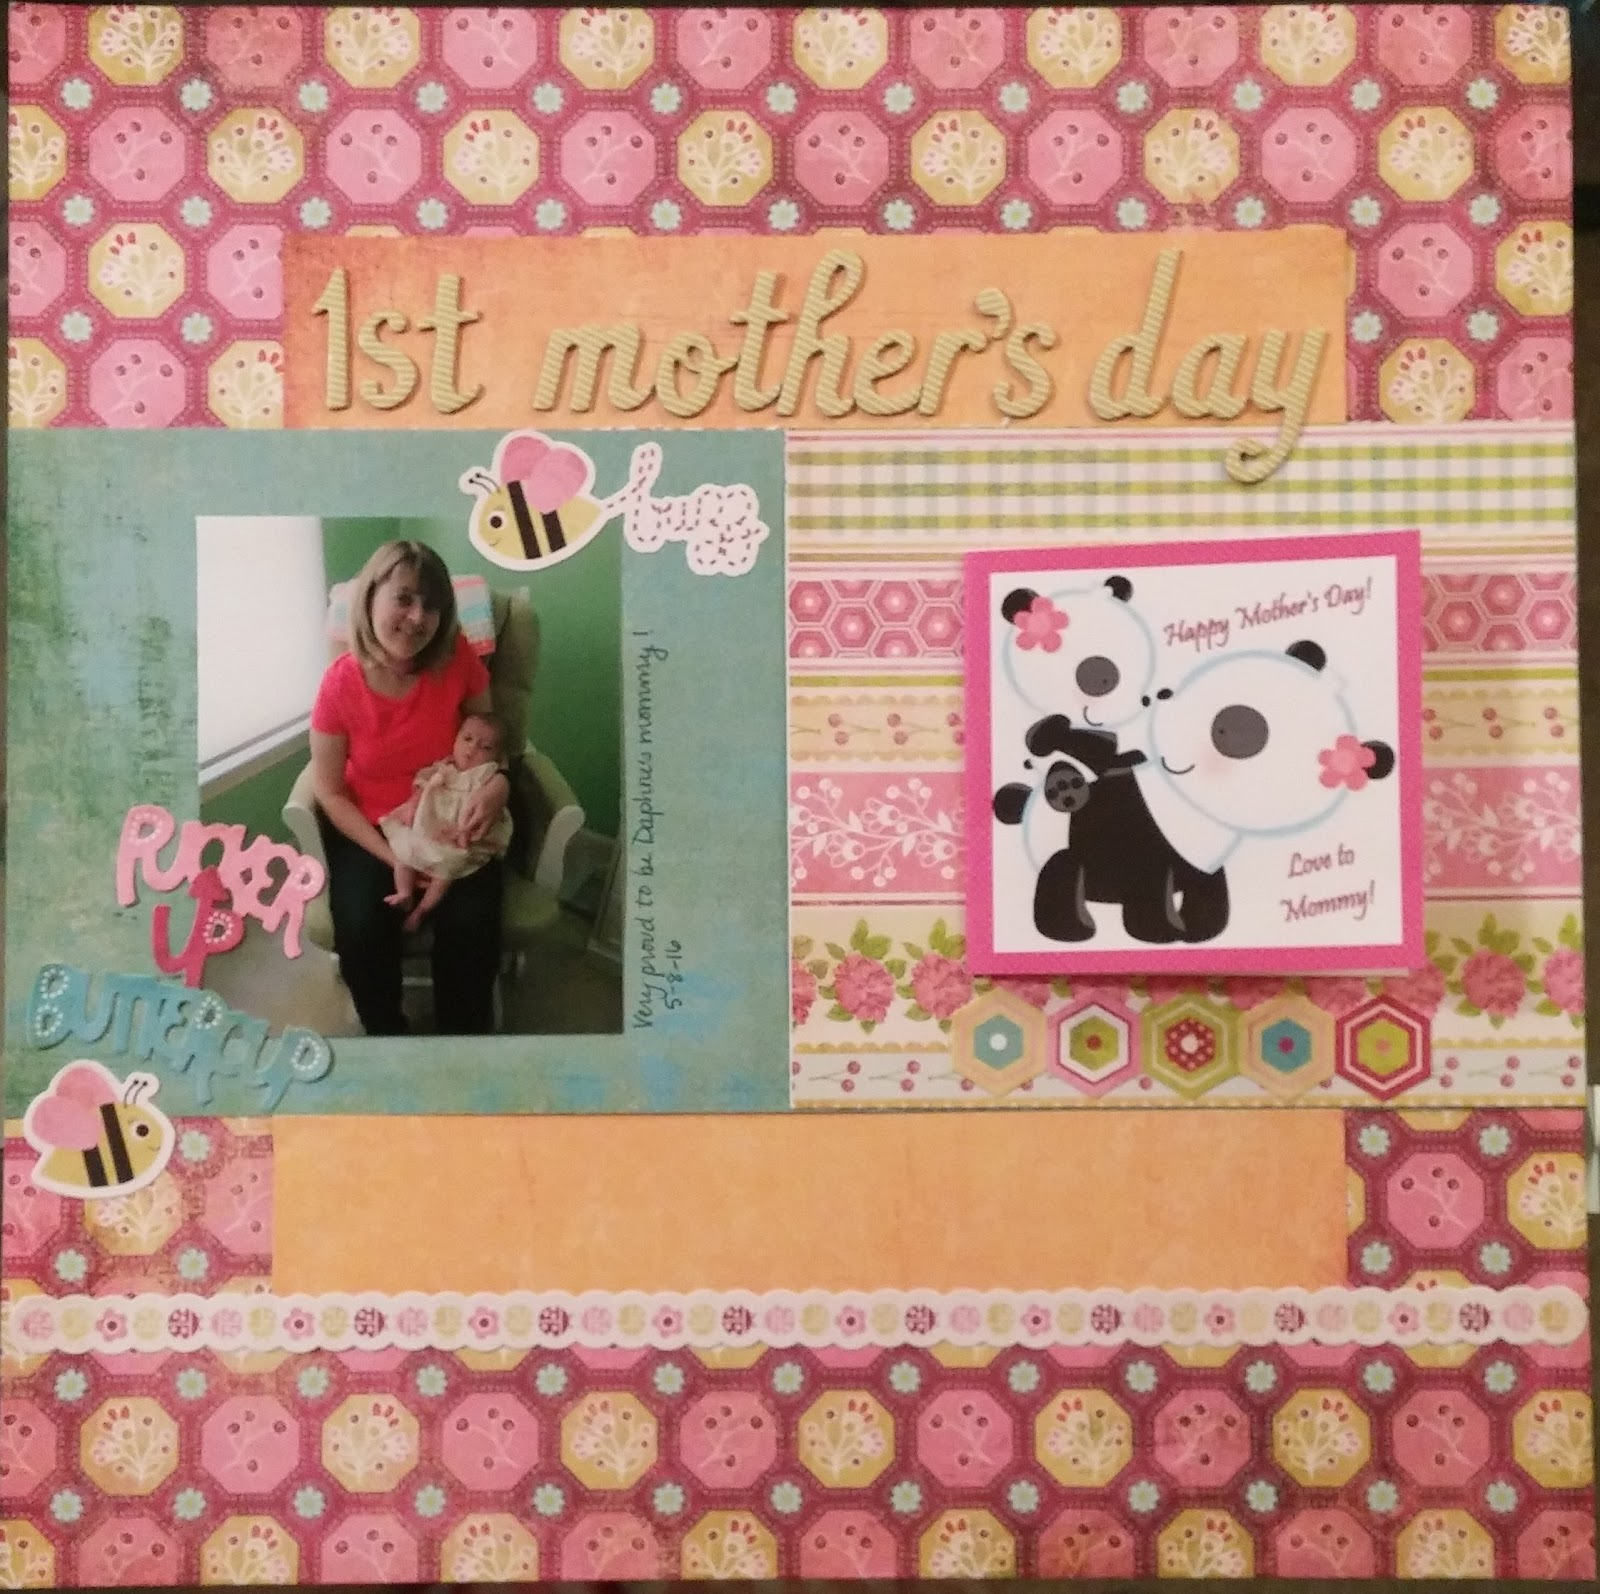 Cook Scrap Craft 1st Mothers Day Scrapbook Page